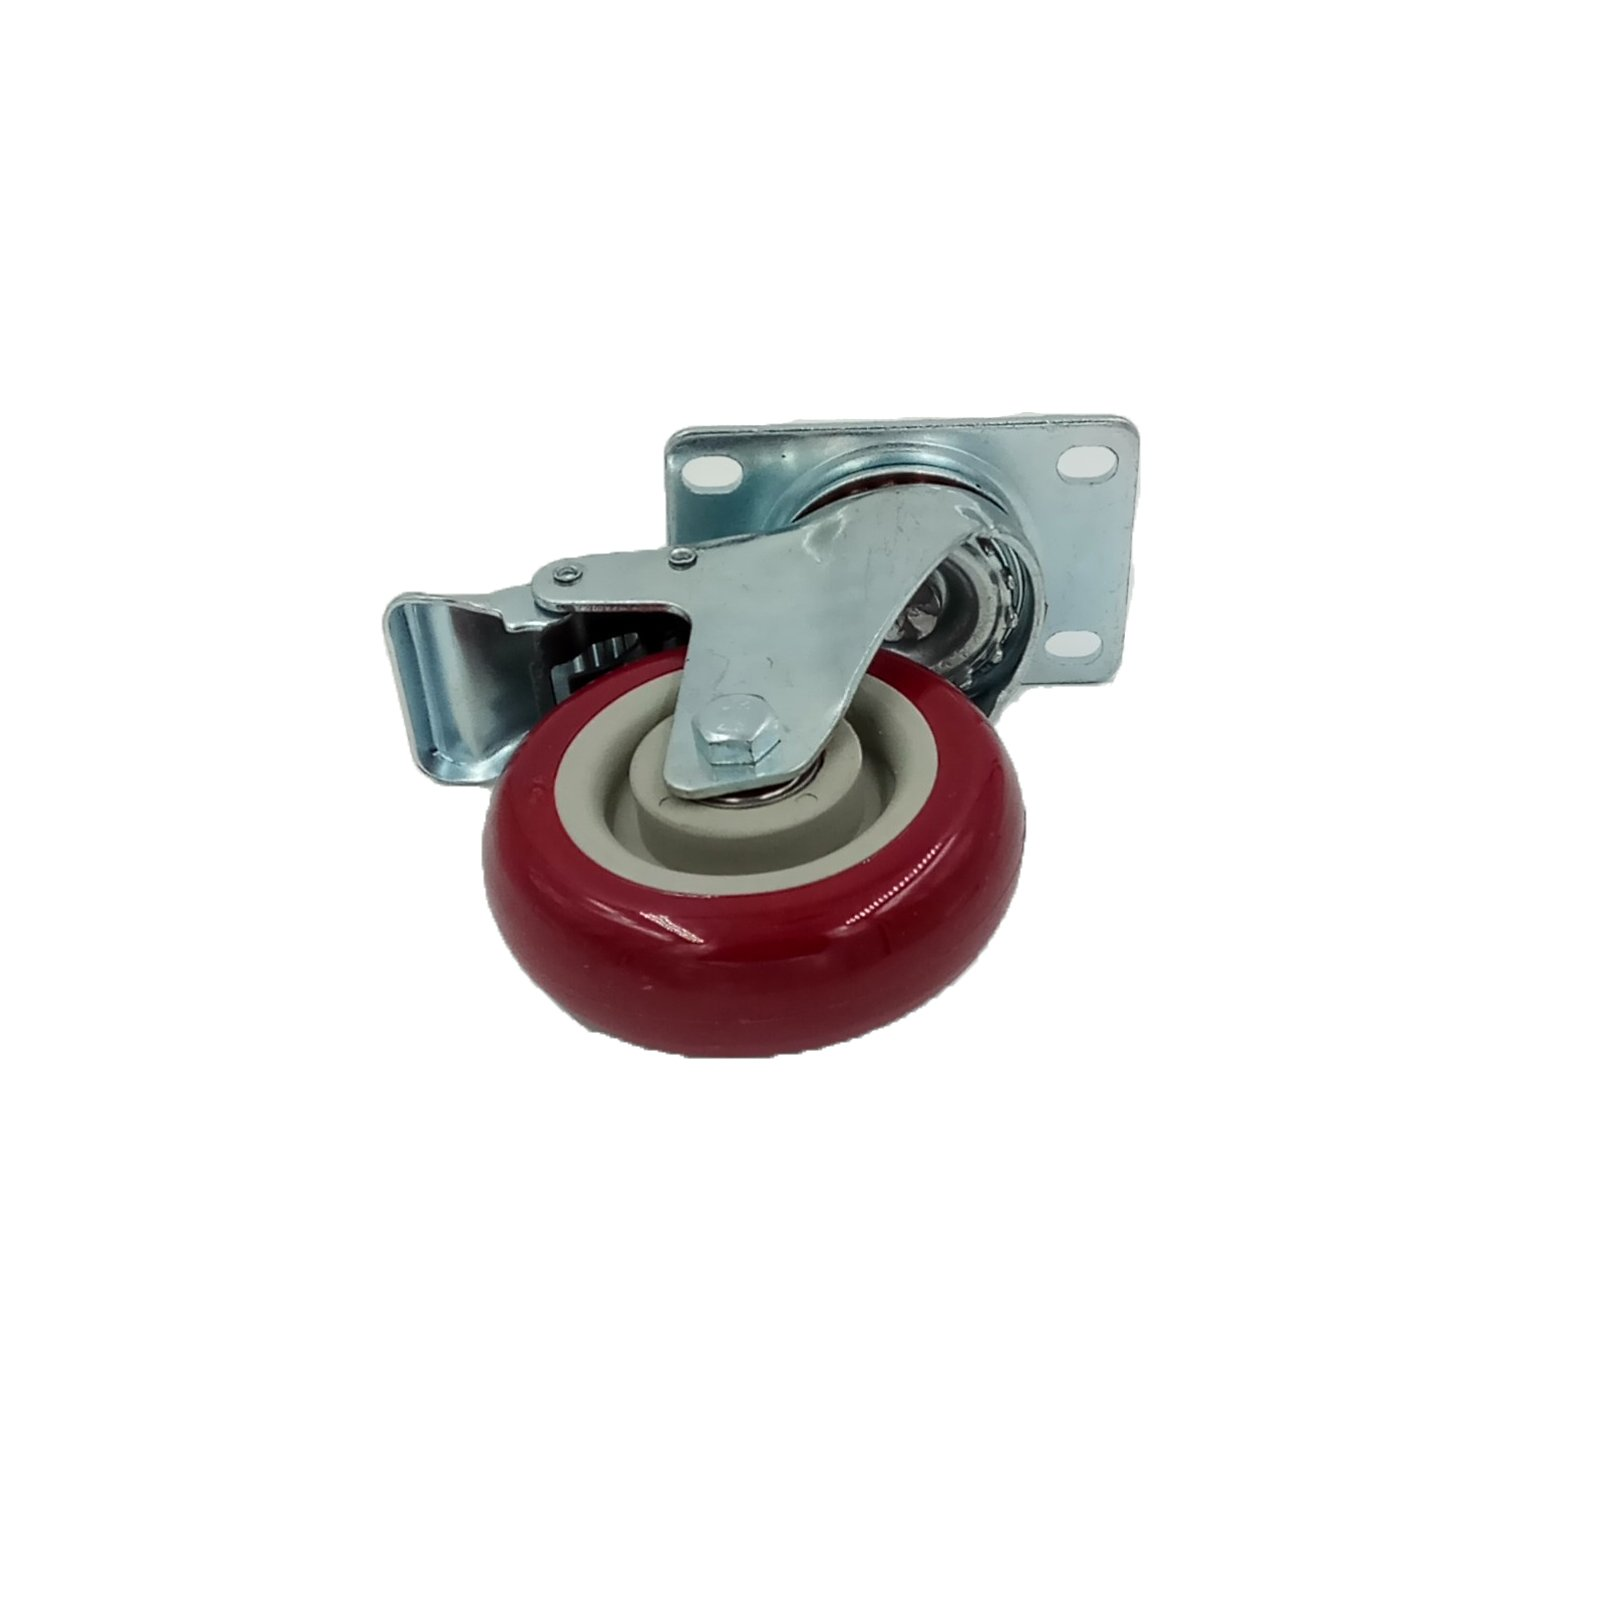 4″ PVC Heavy Duty Swivel Caster Wheels Lockable Ball Bearing 300Lbs each (Set of 16) by MarsIndustry (Image #3)